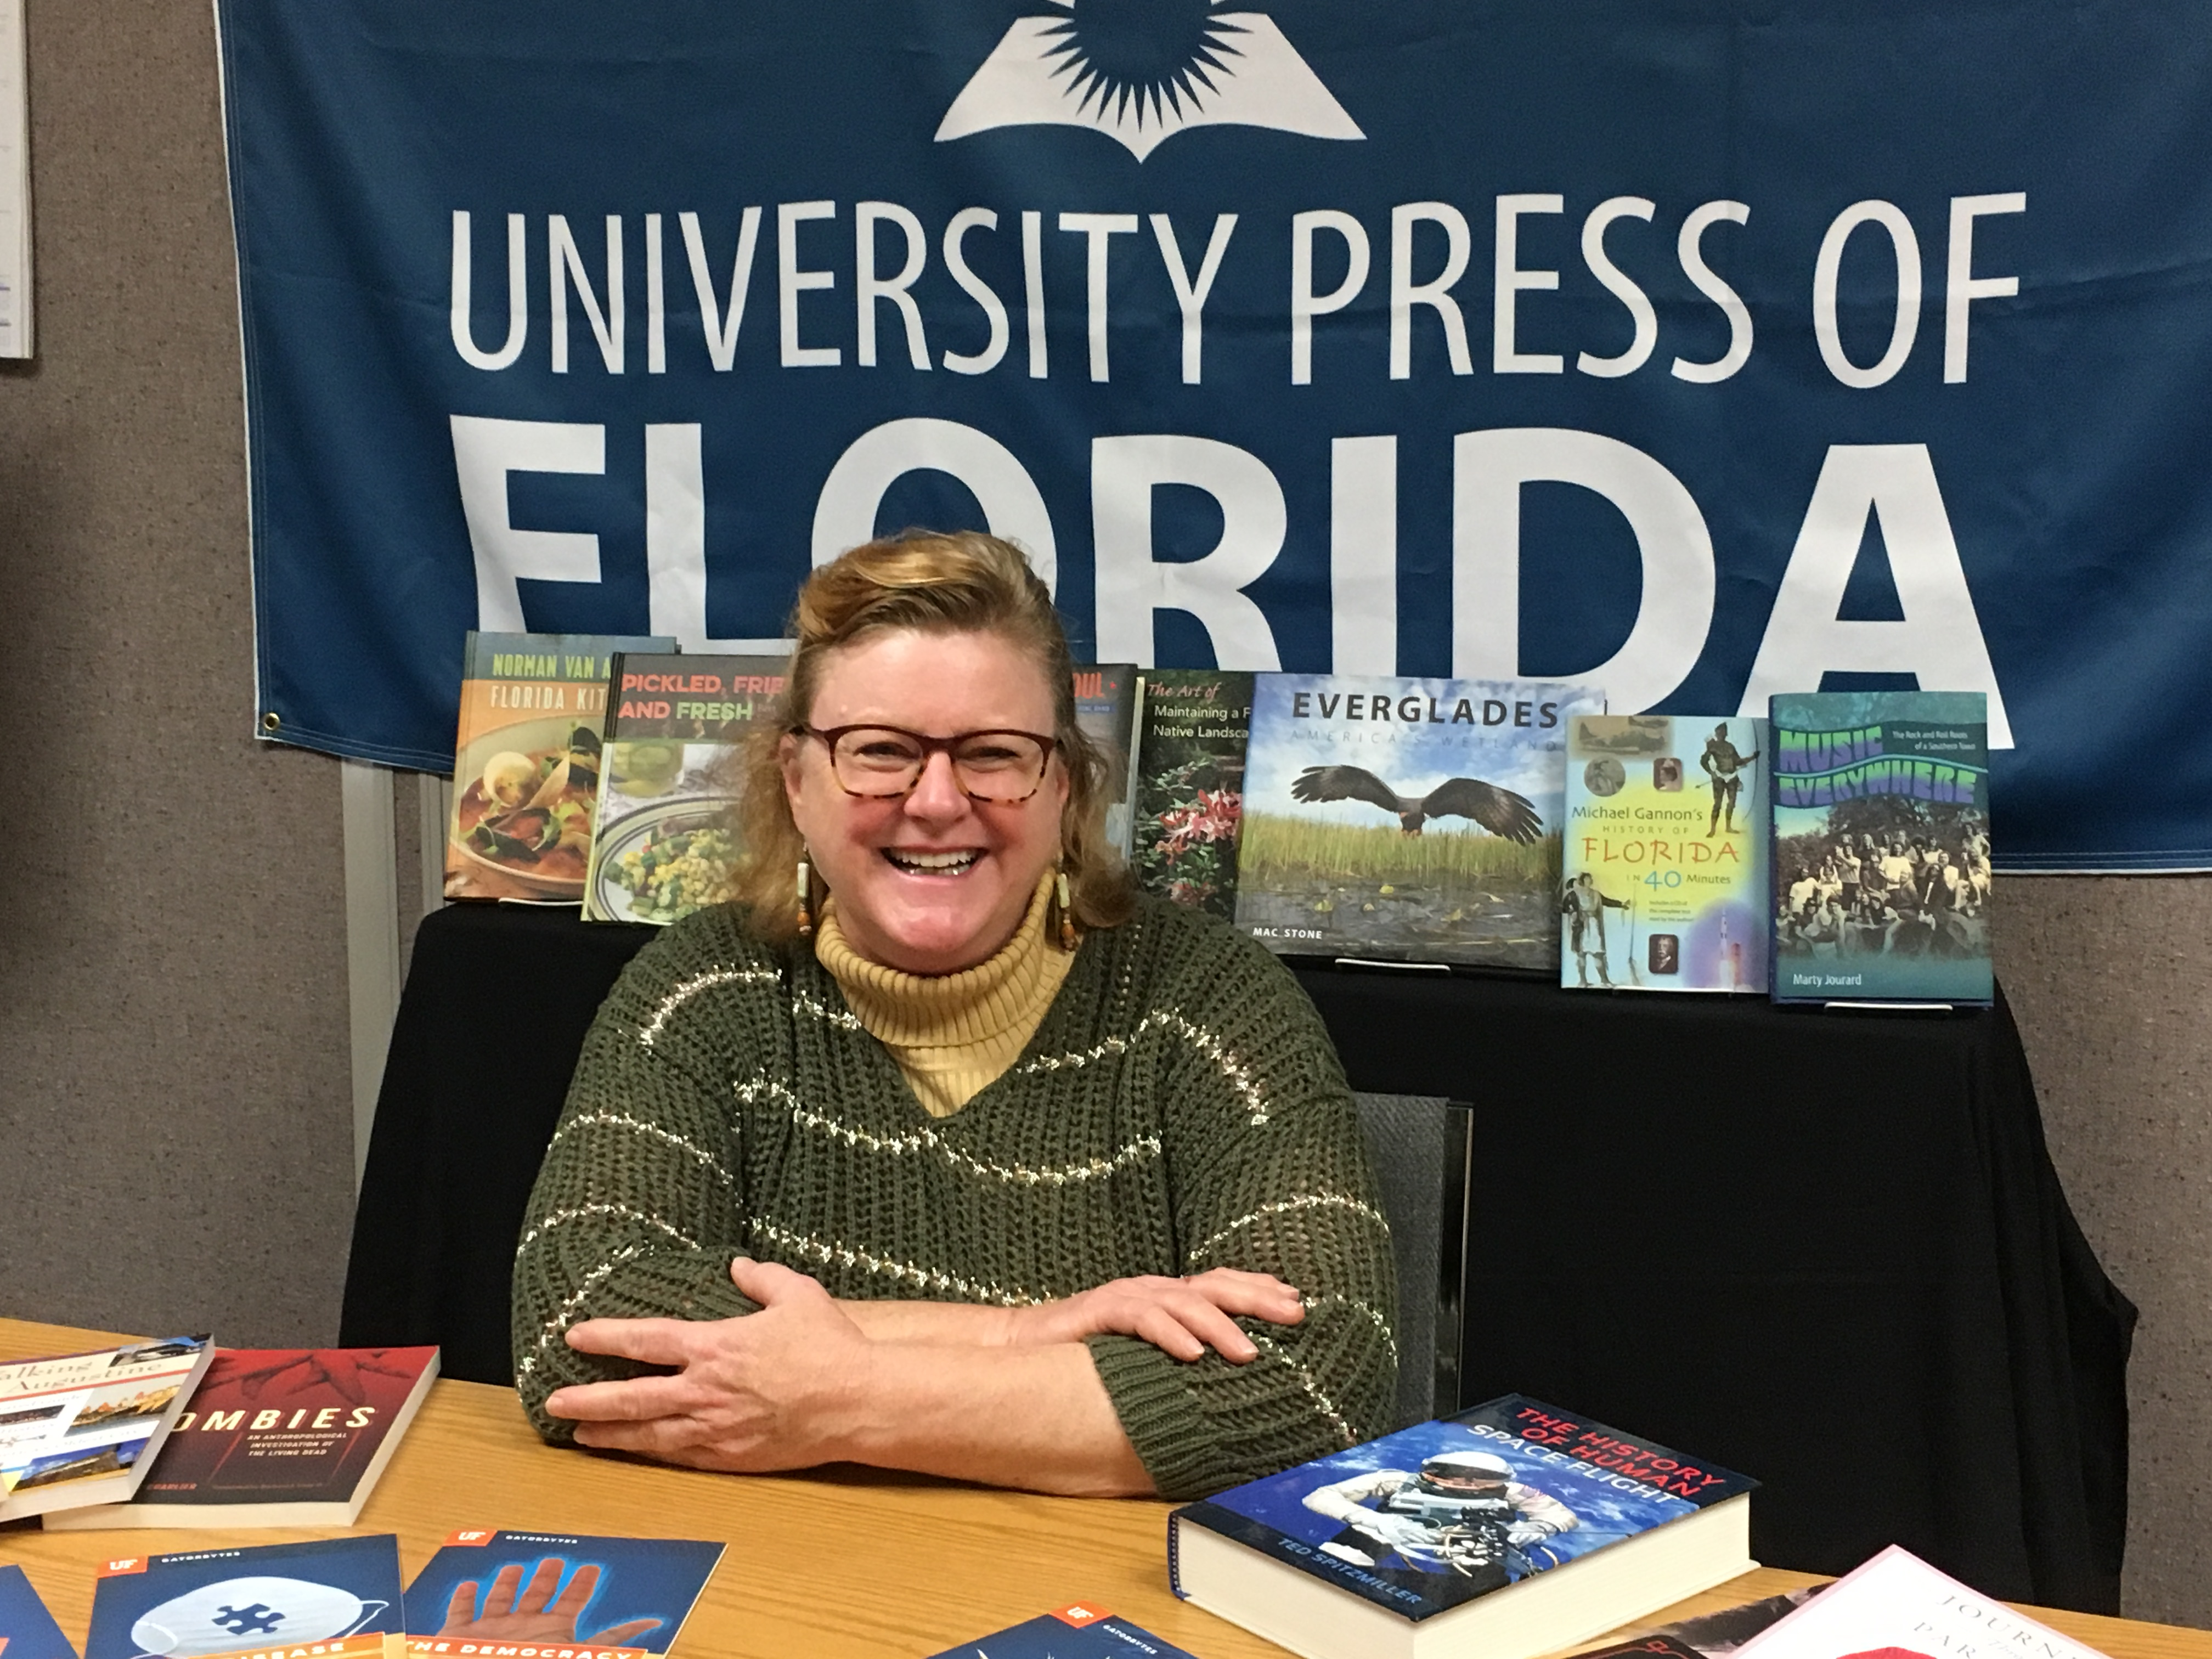 University Press of Florida: Local roots, expansive reach